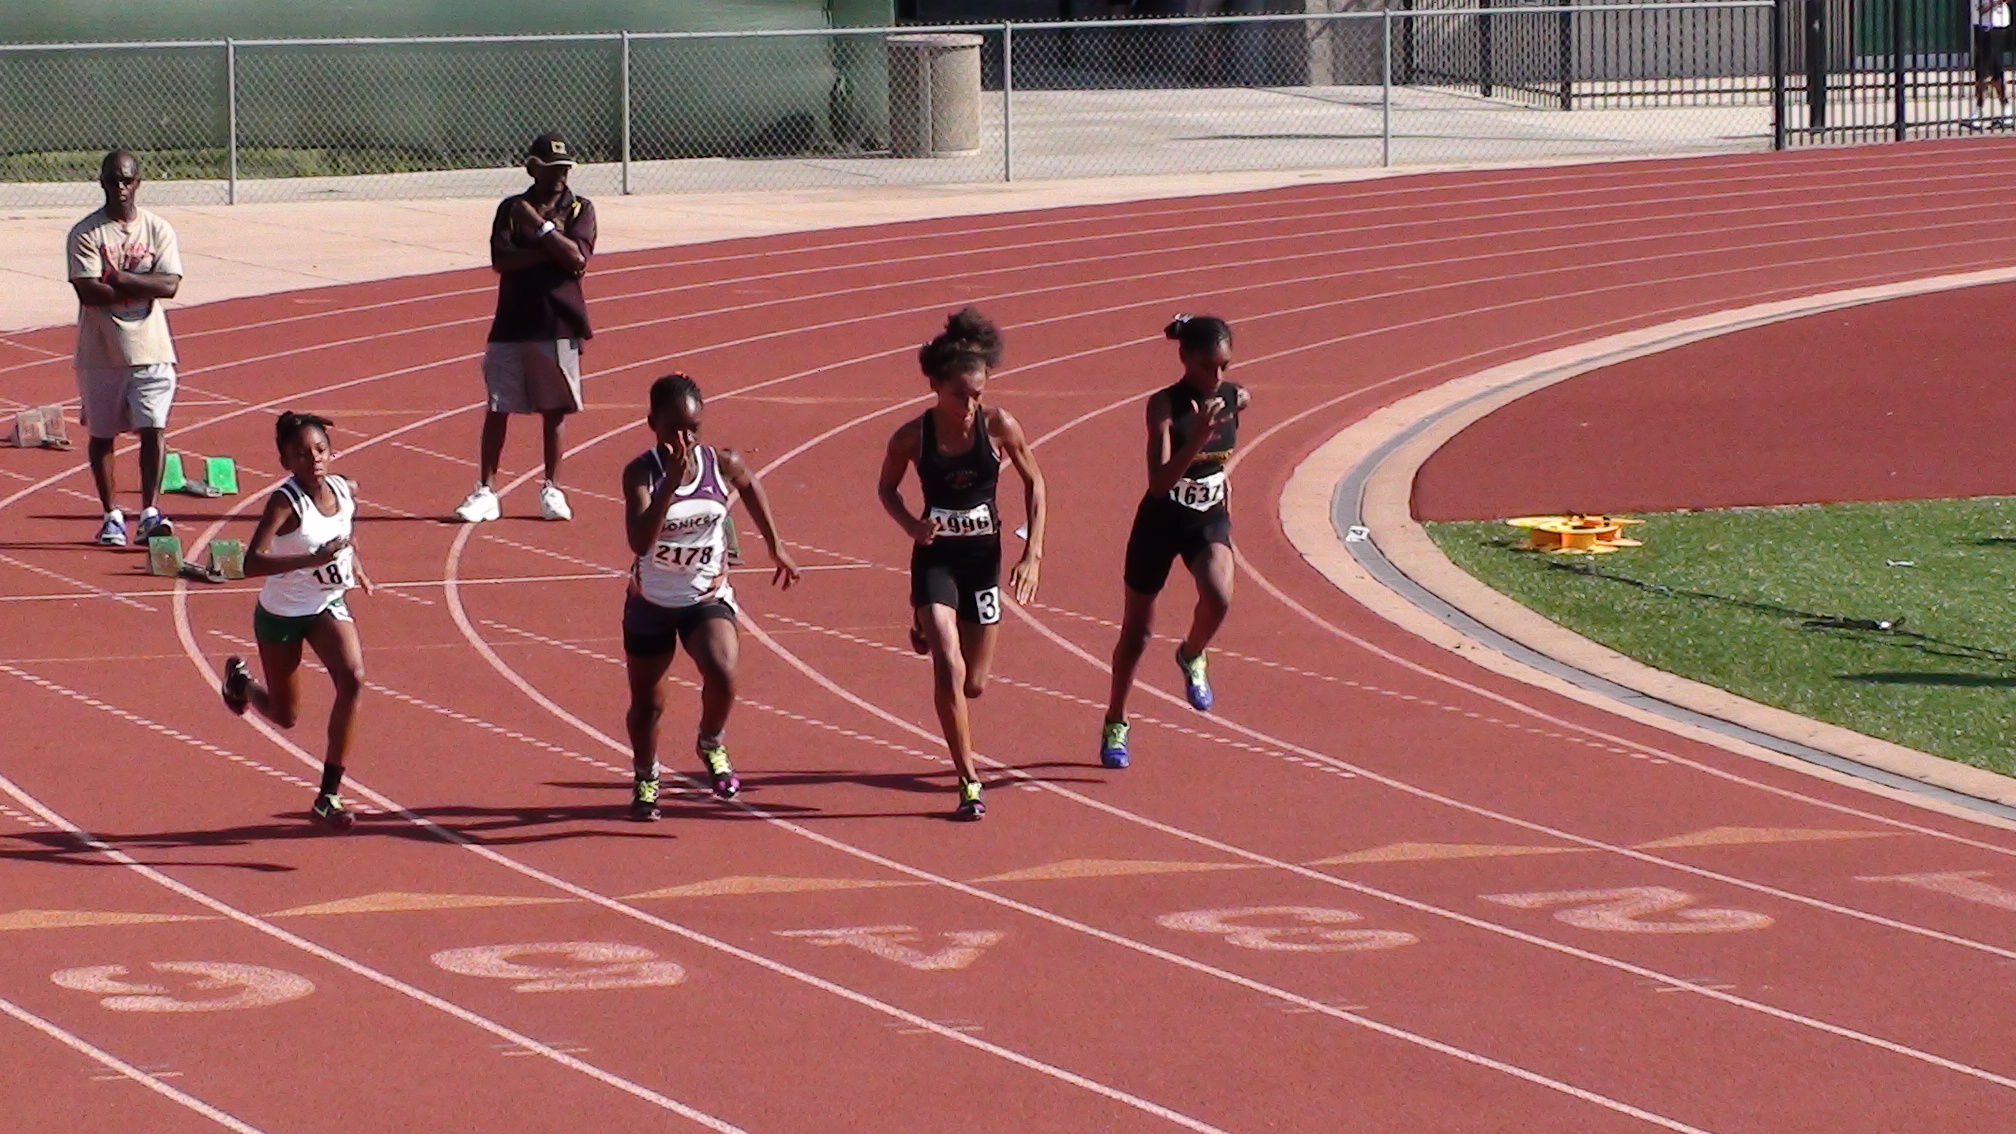 Corriell in the 100m